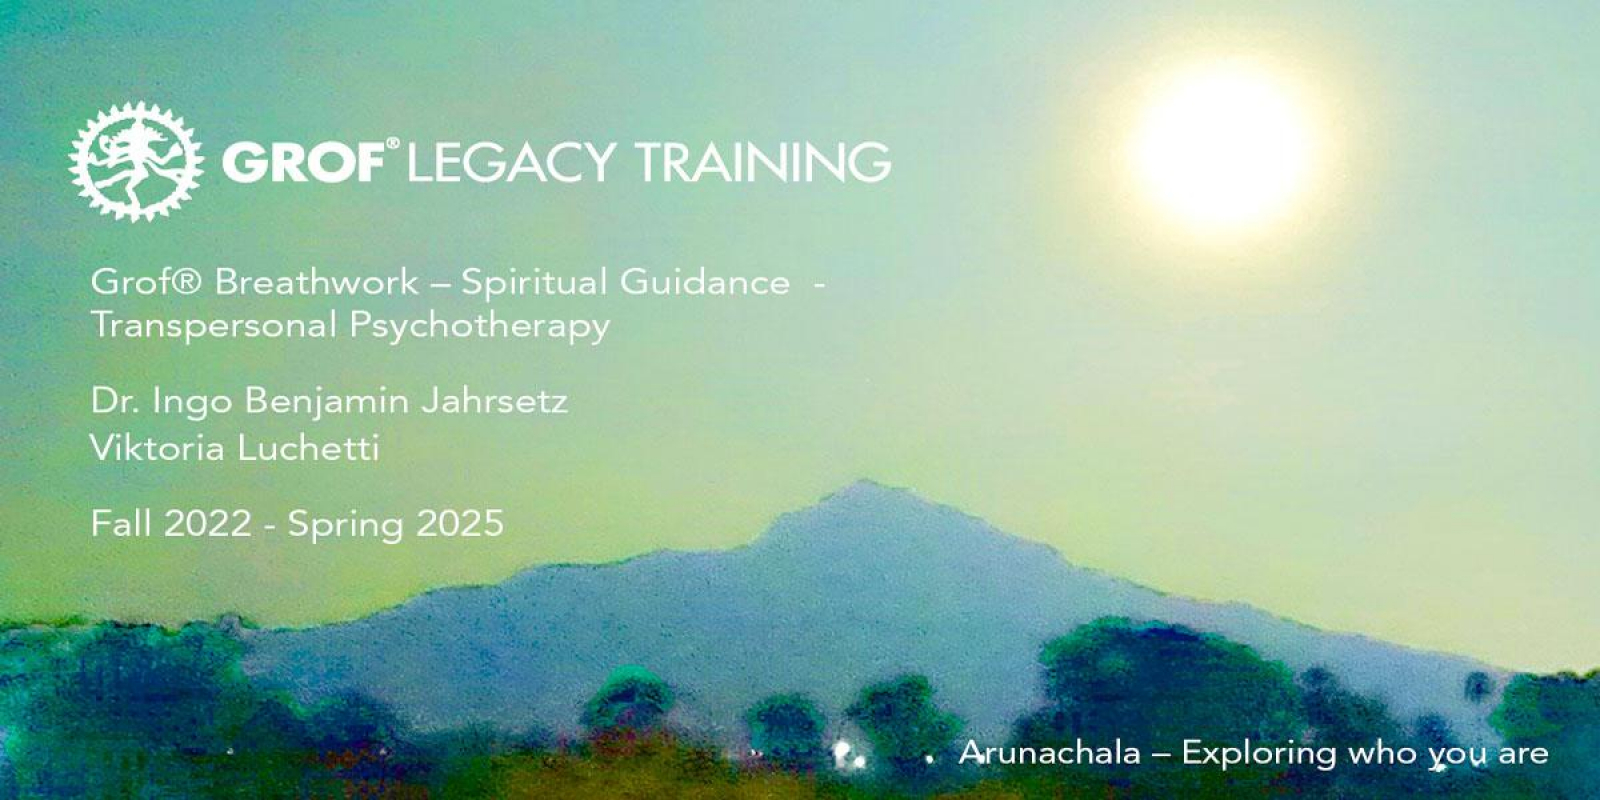 Grof Legacy Training